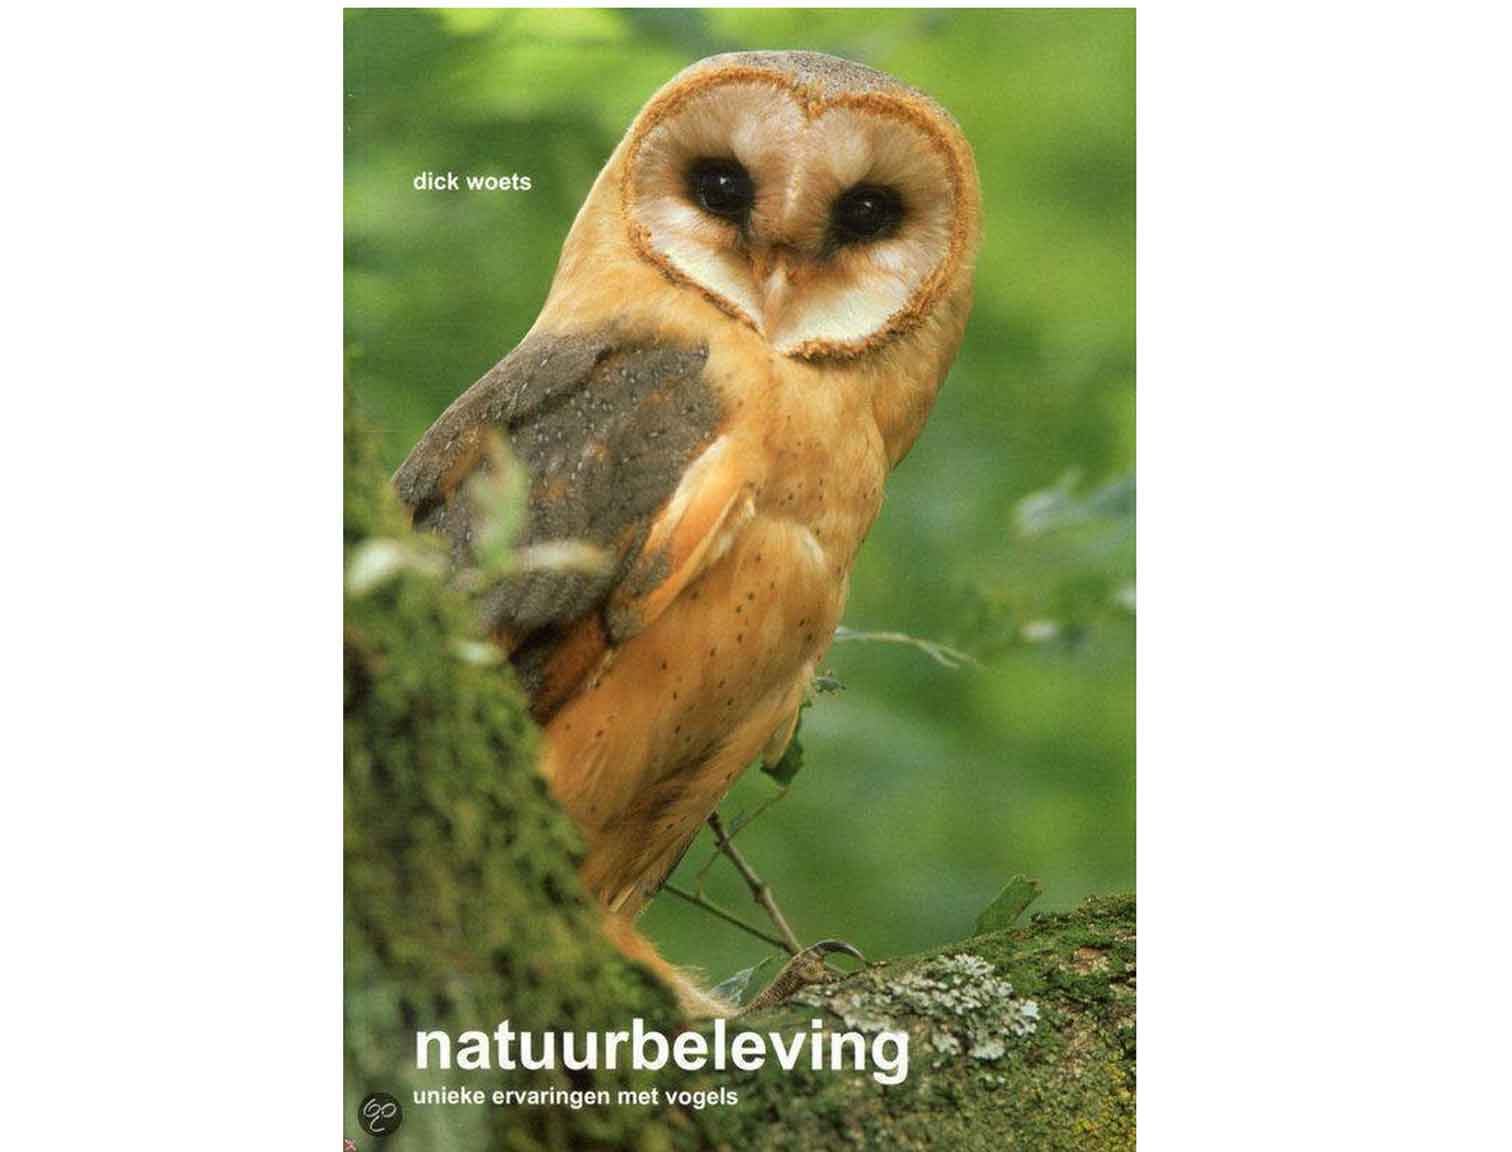 natuurbeleving